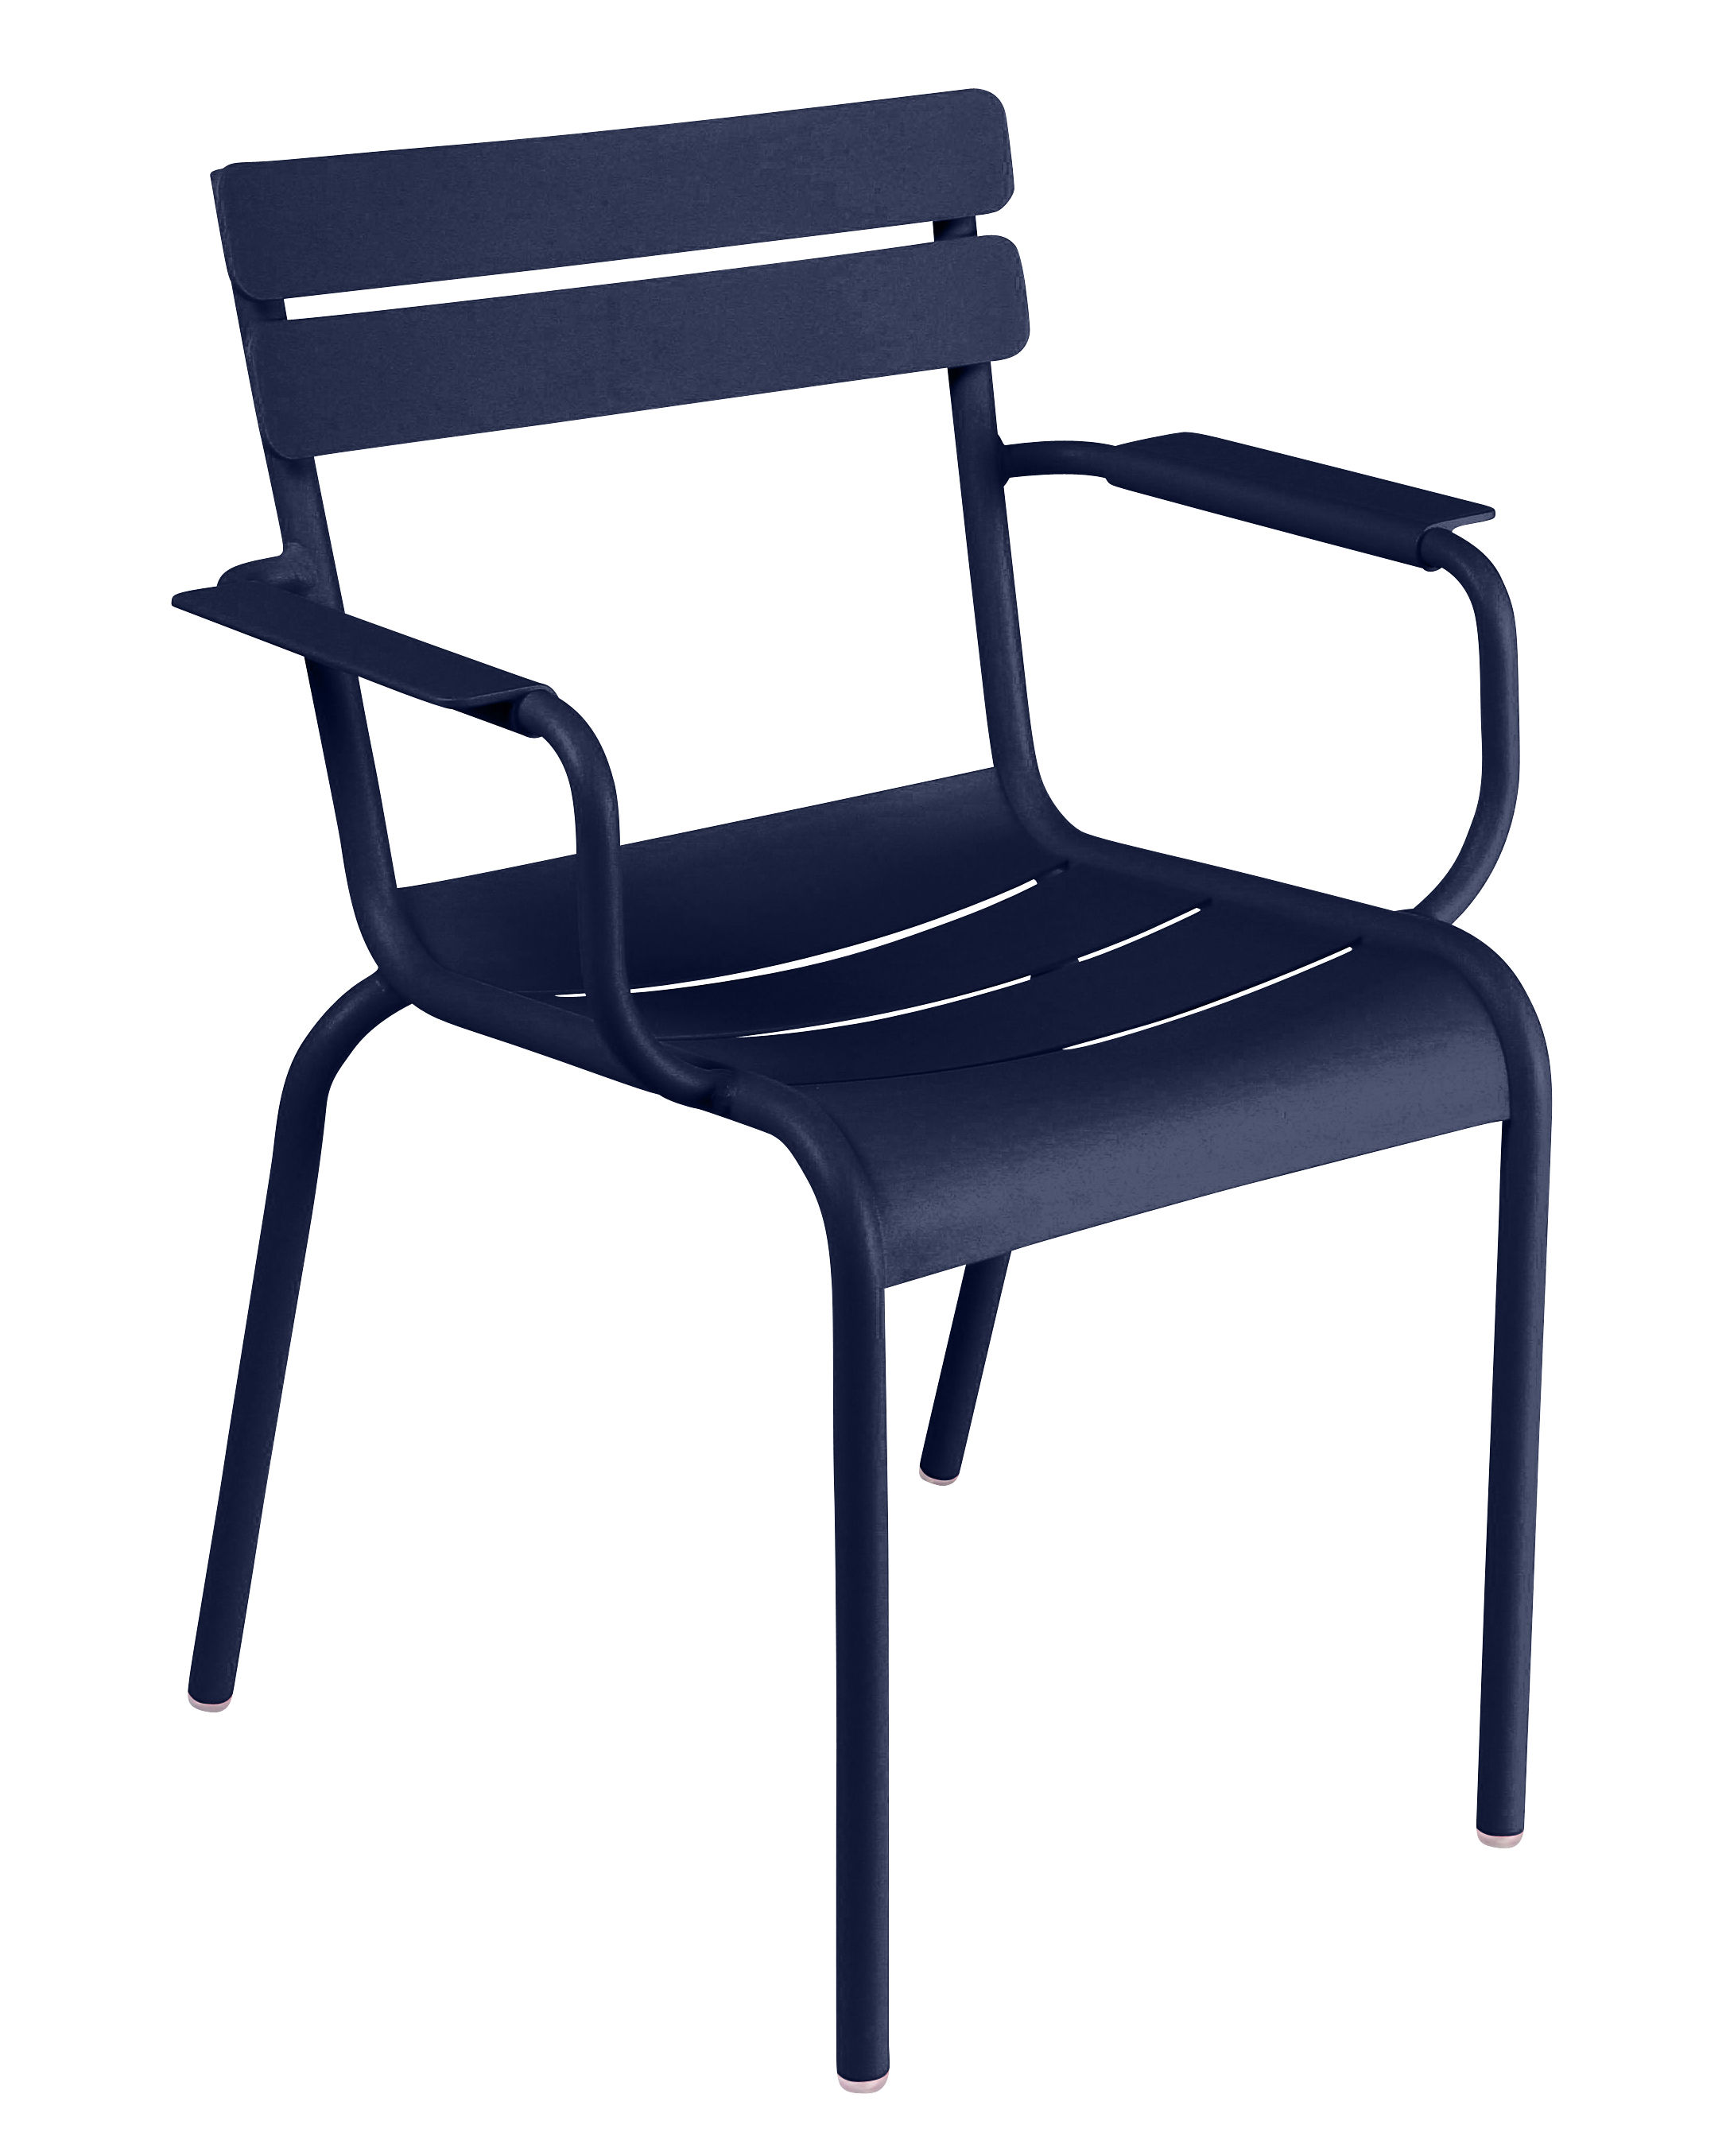 fauteuil empilable luxembourg aluminium bleu abysse fermob made in design. Black Bedroom Furniture Sets. Home Design Ideas